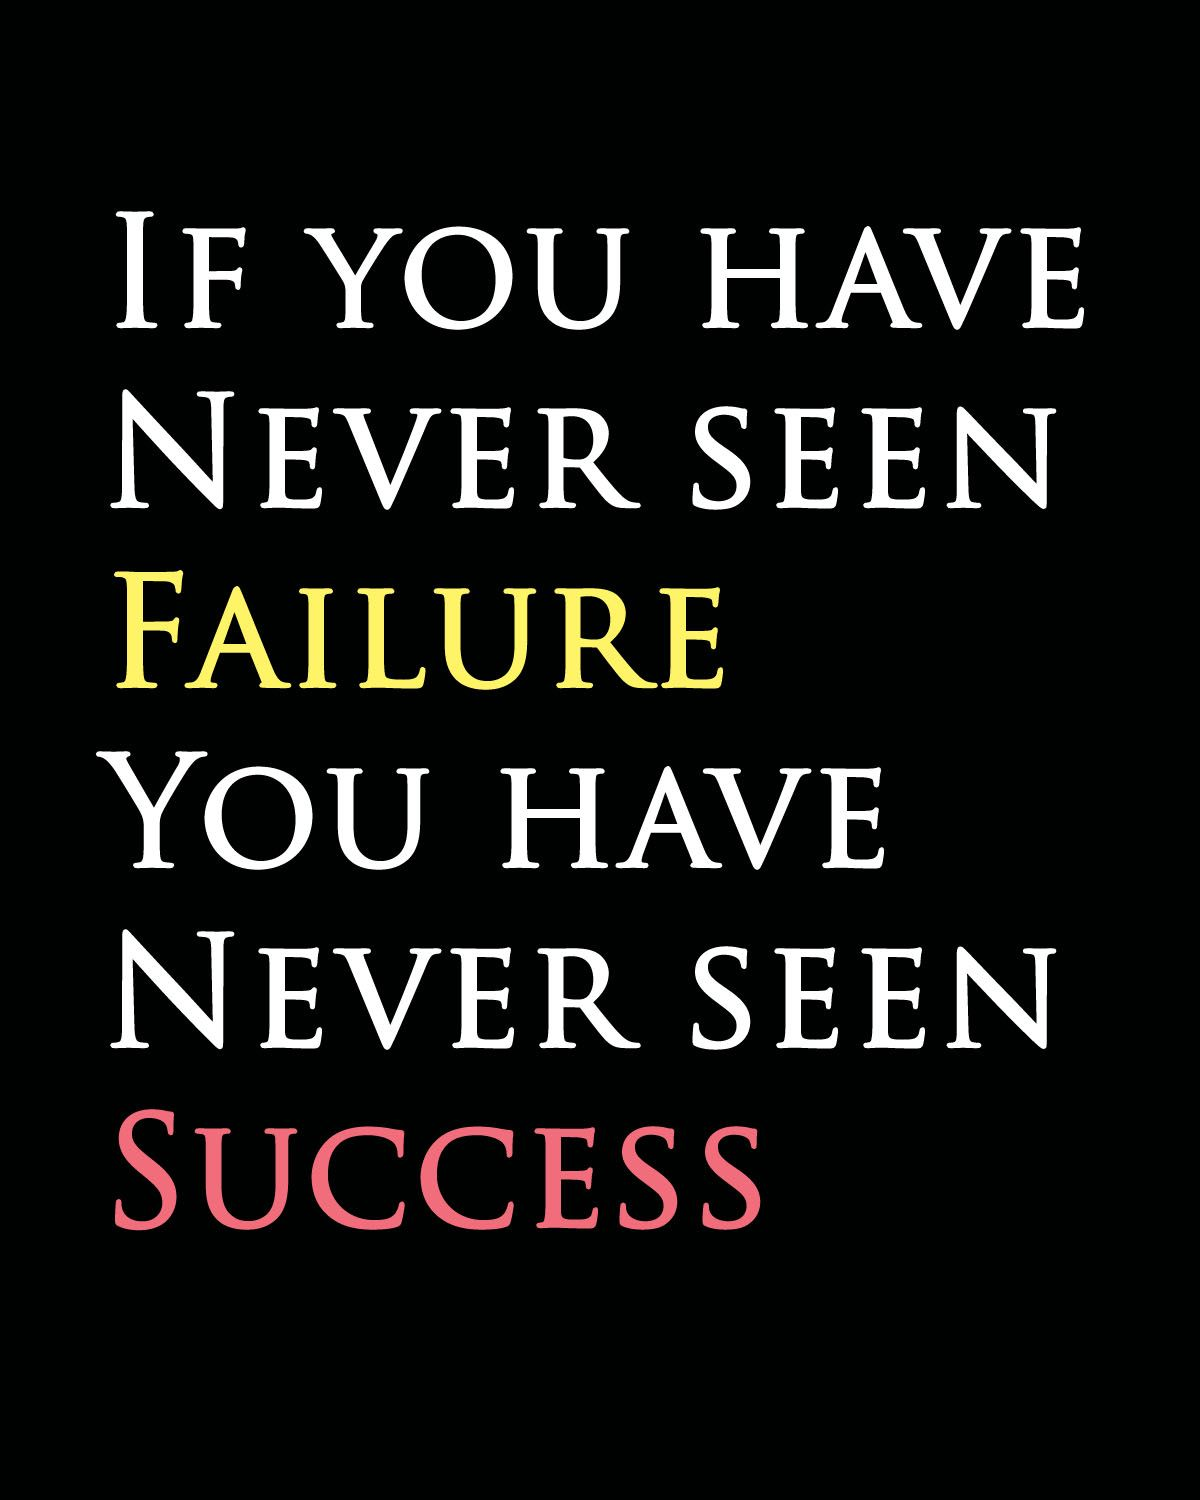 Inspirational Quotes About Failure: If You Have Never Seen Failure, You Have Never Seen